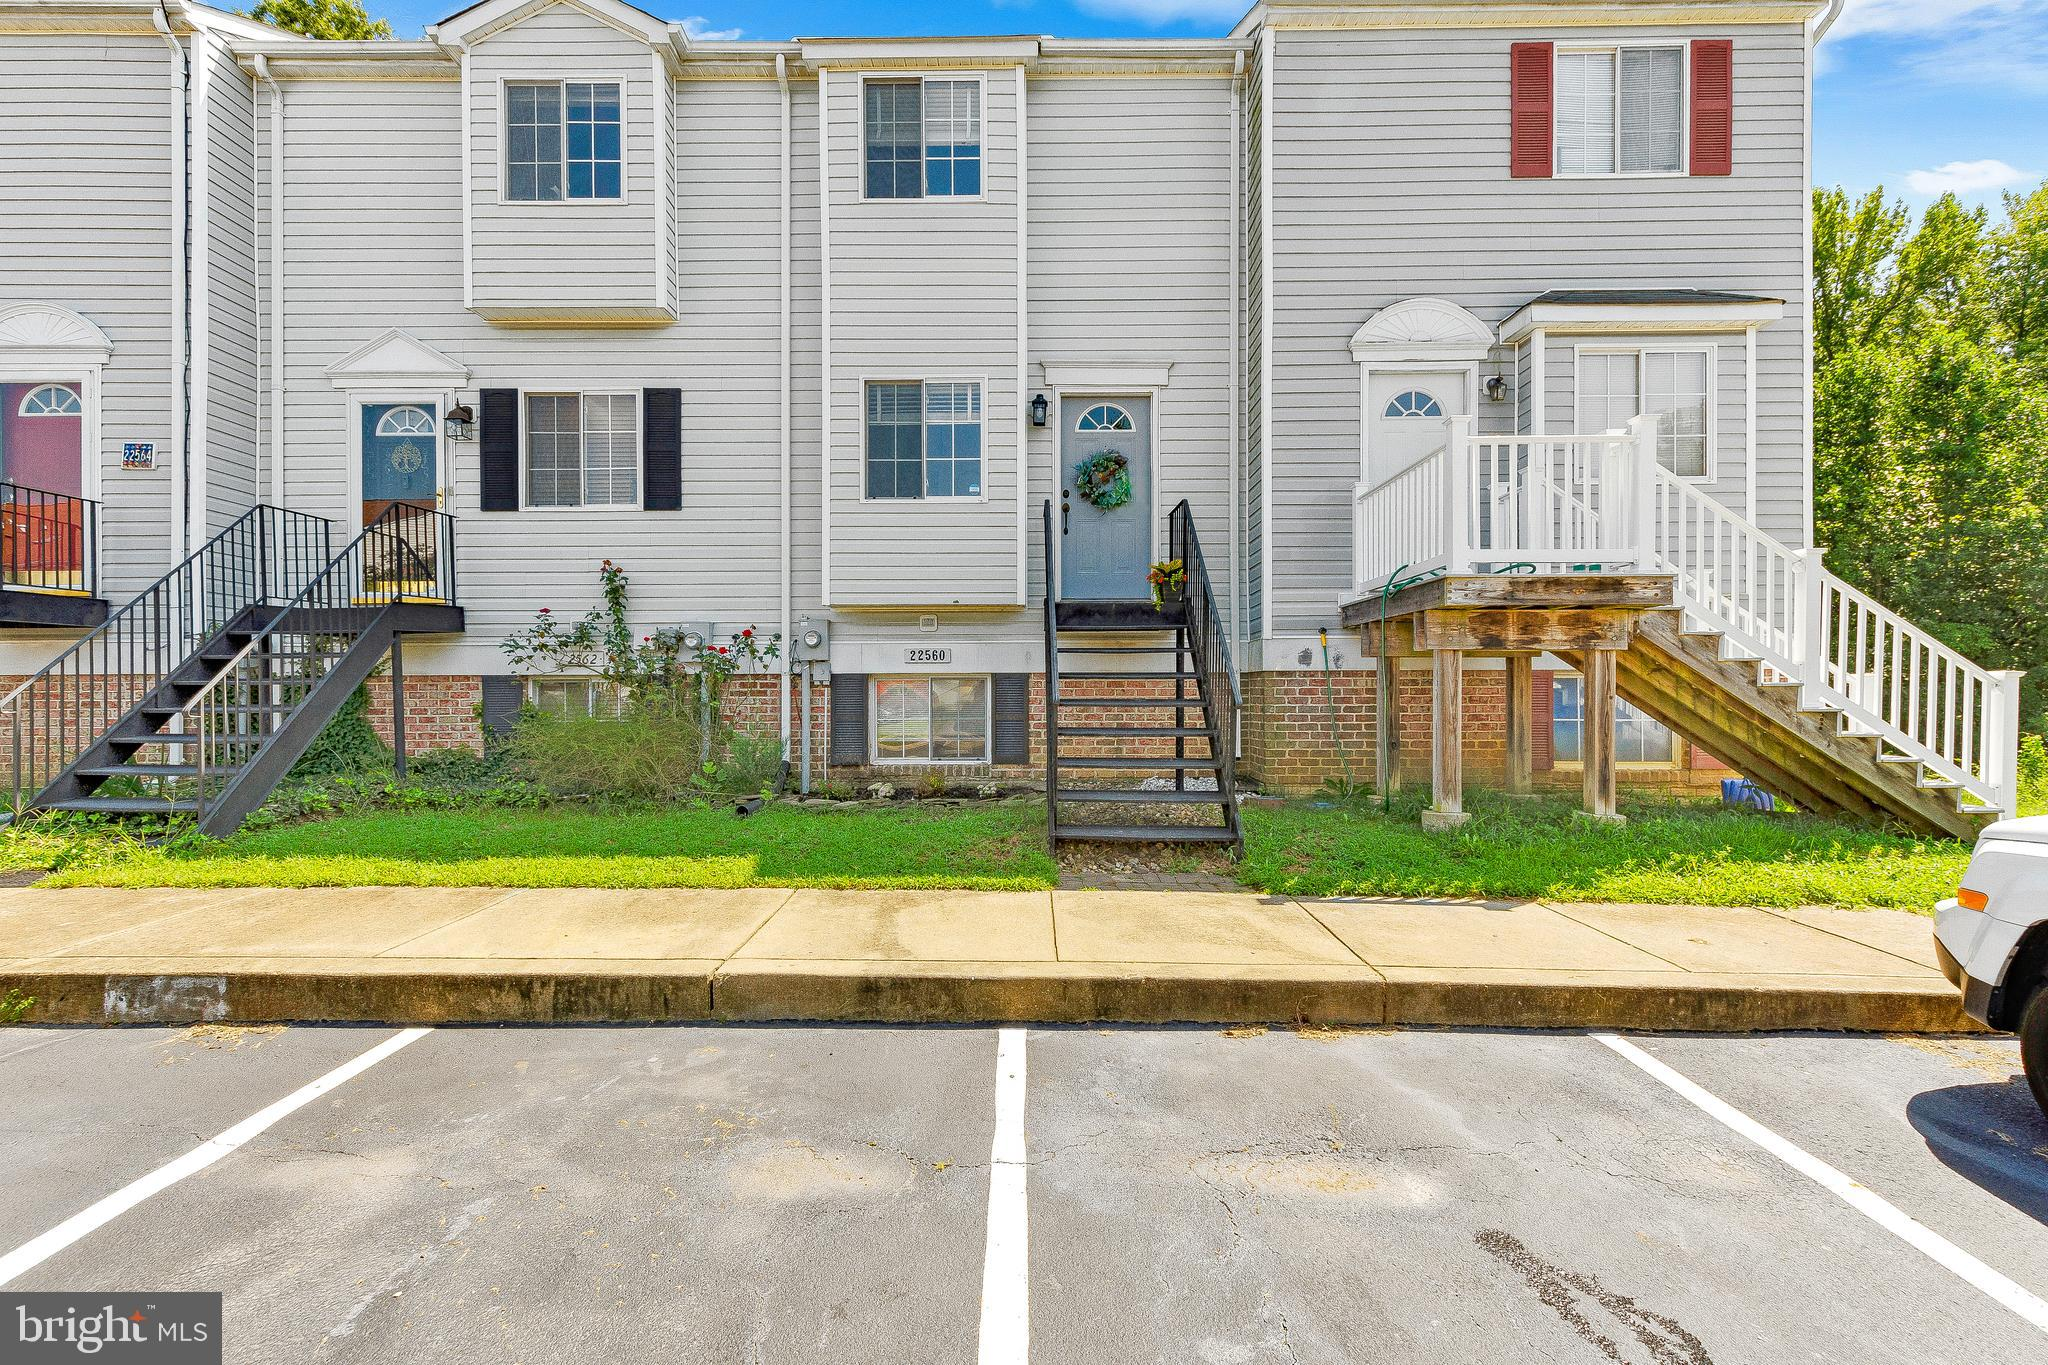 MOVE IN READY!! 2 bedroom 1.5 bath townhouse in Hickory Hills! HOA includes access to many amenities